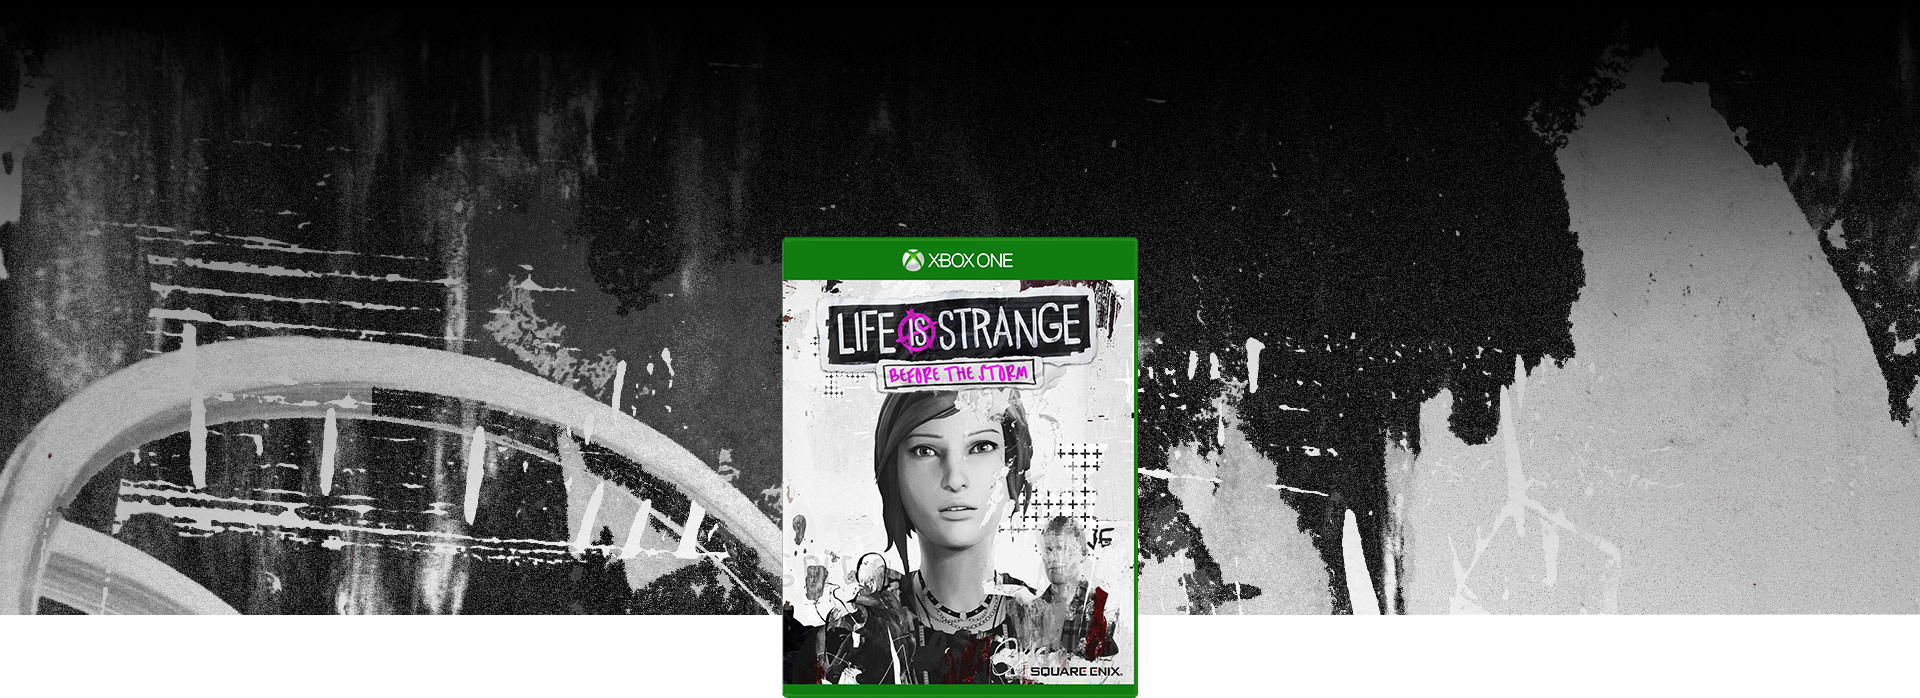 Life is Strange Before the Storm 包裝圖。背景塗掉的拼貼